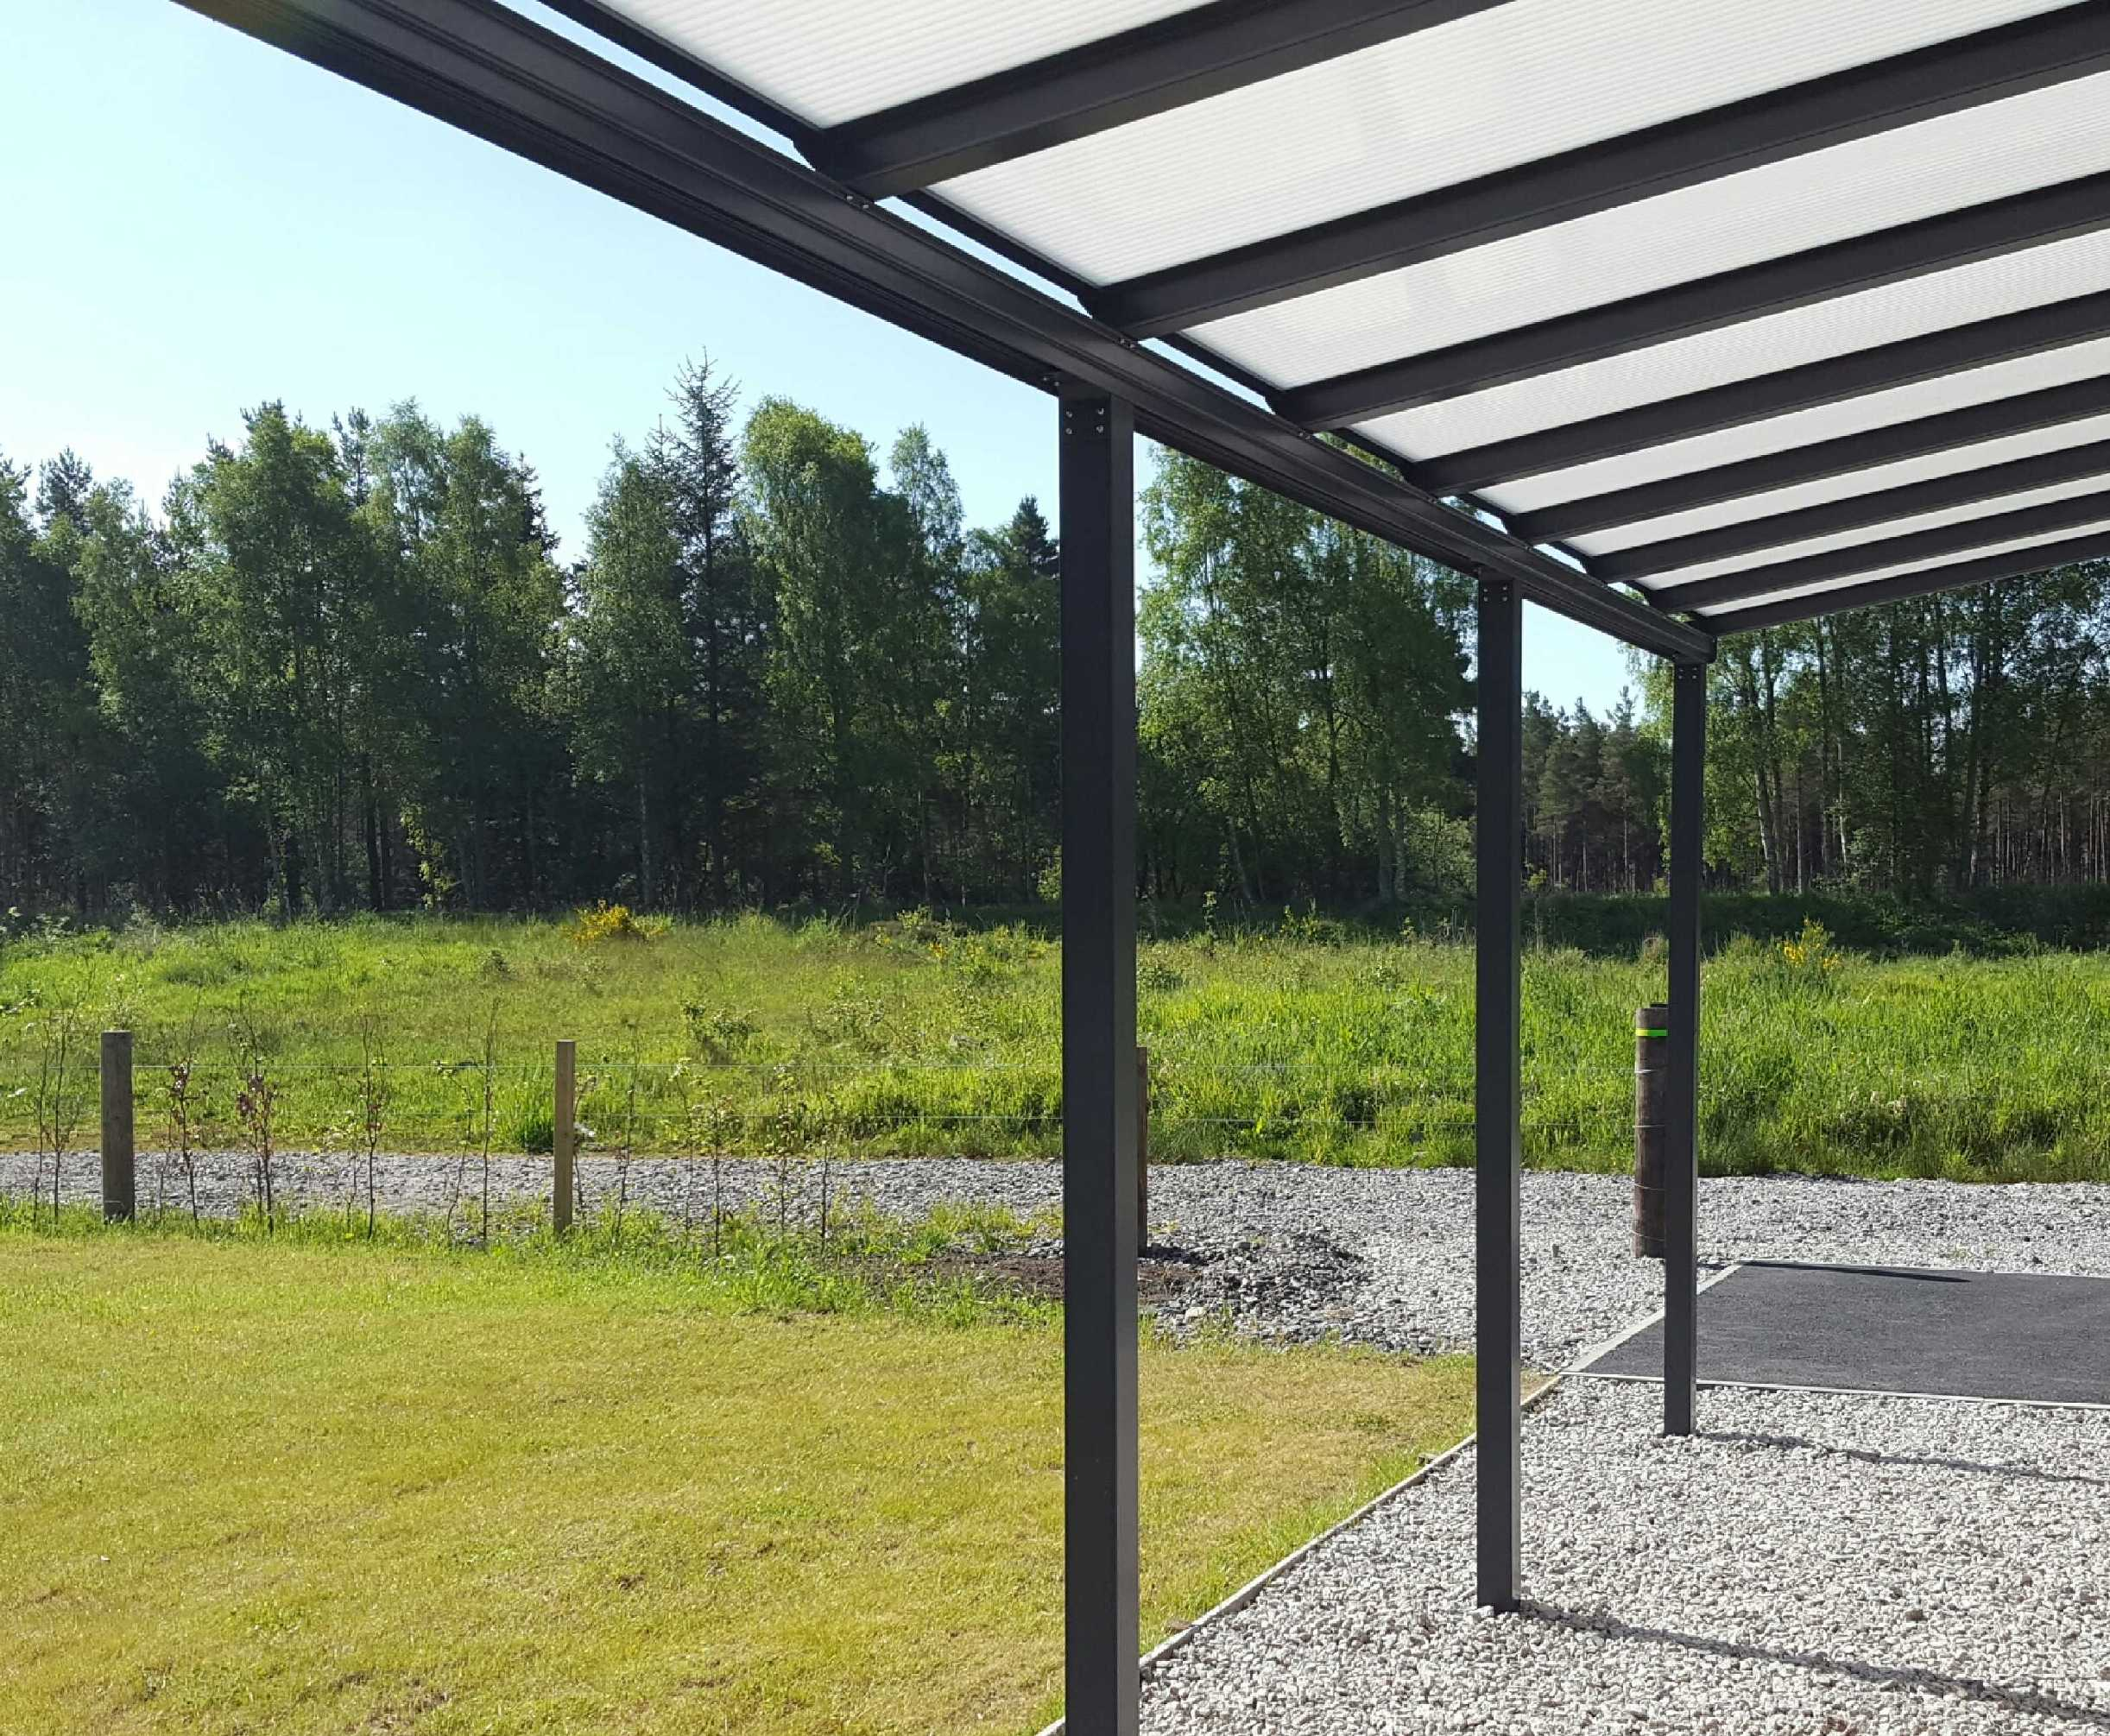 Omega Smart Lean-To Canopy, Anthracite Grey, 16mm Polycarbonate Glazing - 3.5m (W) x 4.0m (P), (3) Supporting Posts